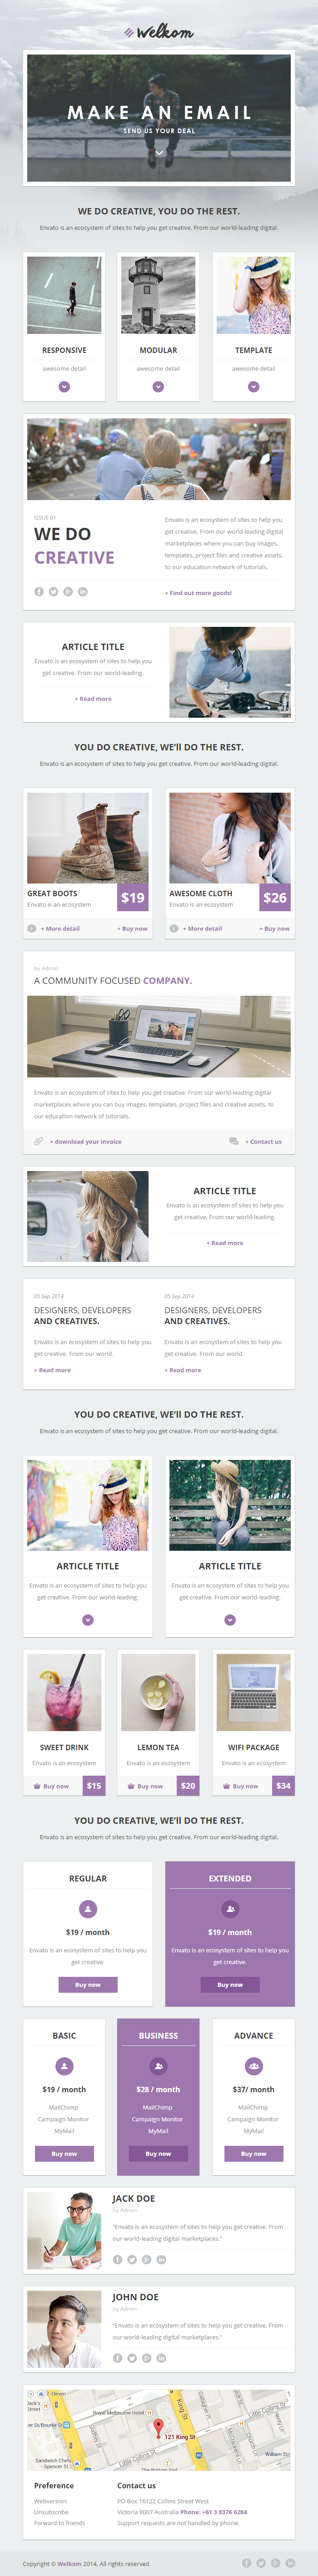 Welkom responsive email template orange grey wordpress and gray mailchimp and mymailwsletter plugin wordpress plugin 6 color style blue cyan green purple orange gray commented html spiritdancerdesigns Gallery